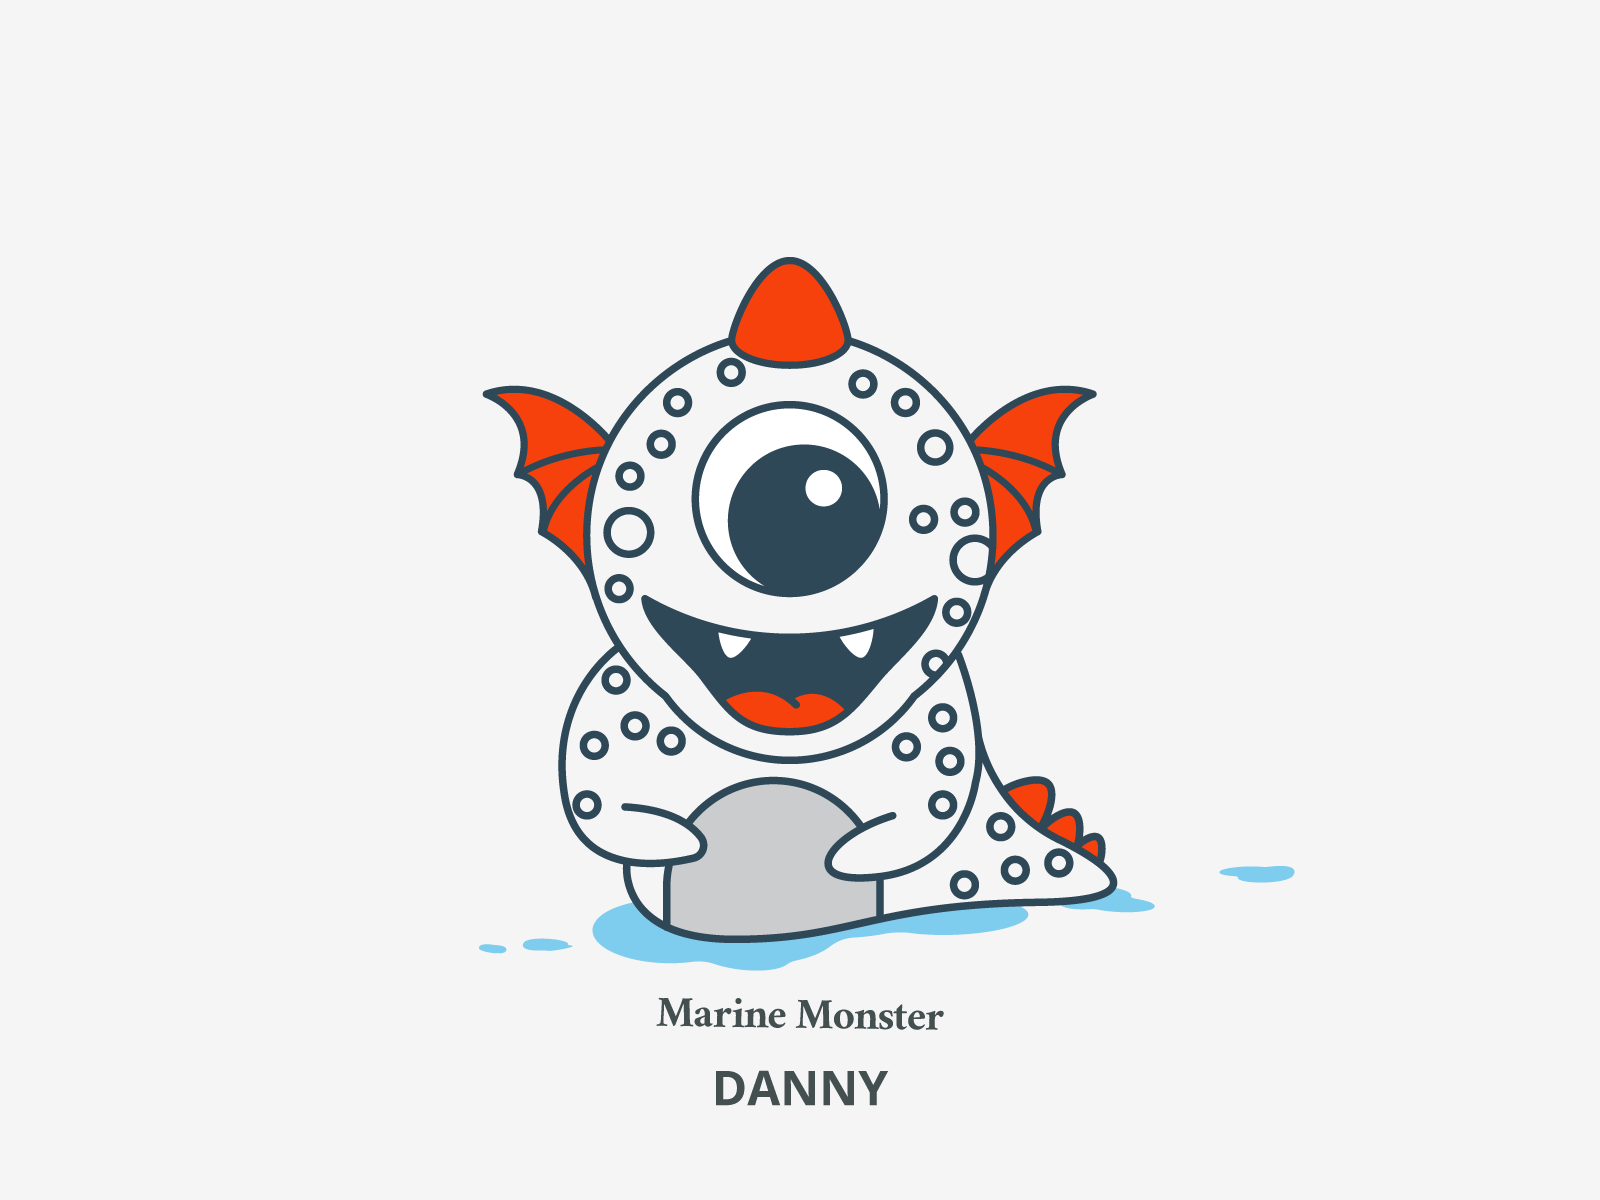 Danny marine monster